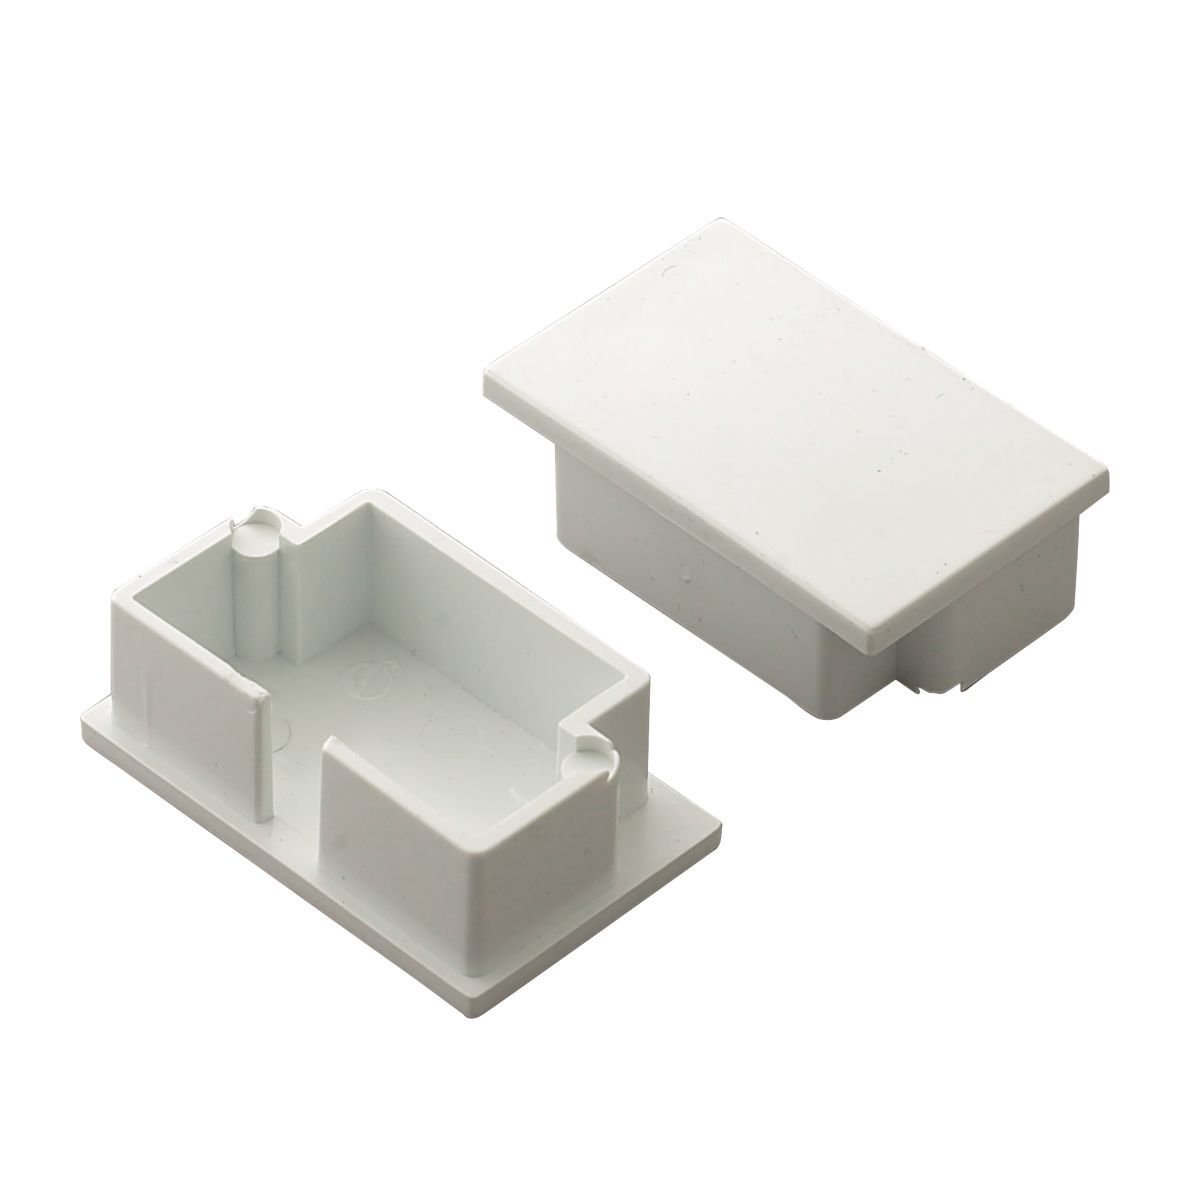 Tower End Cap 38 x 25mm Pack of 2